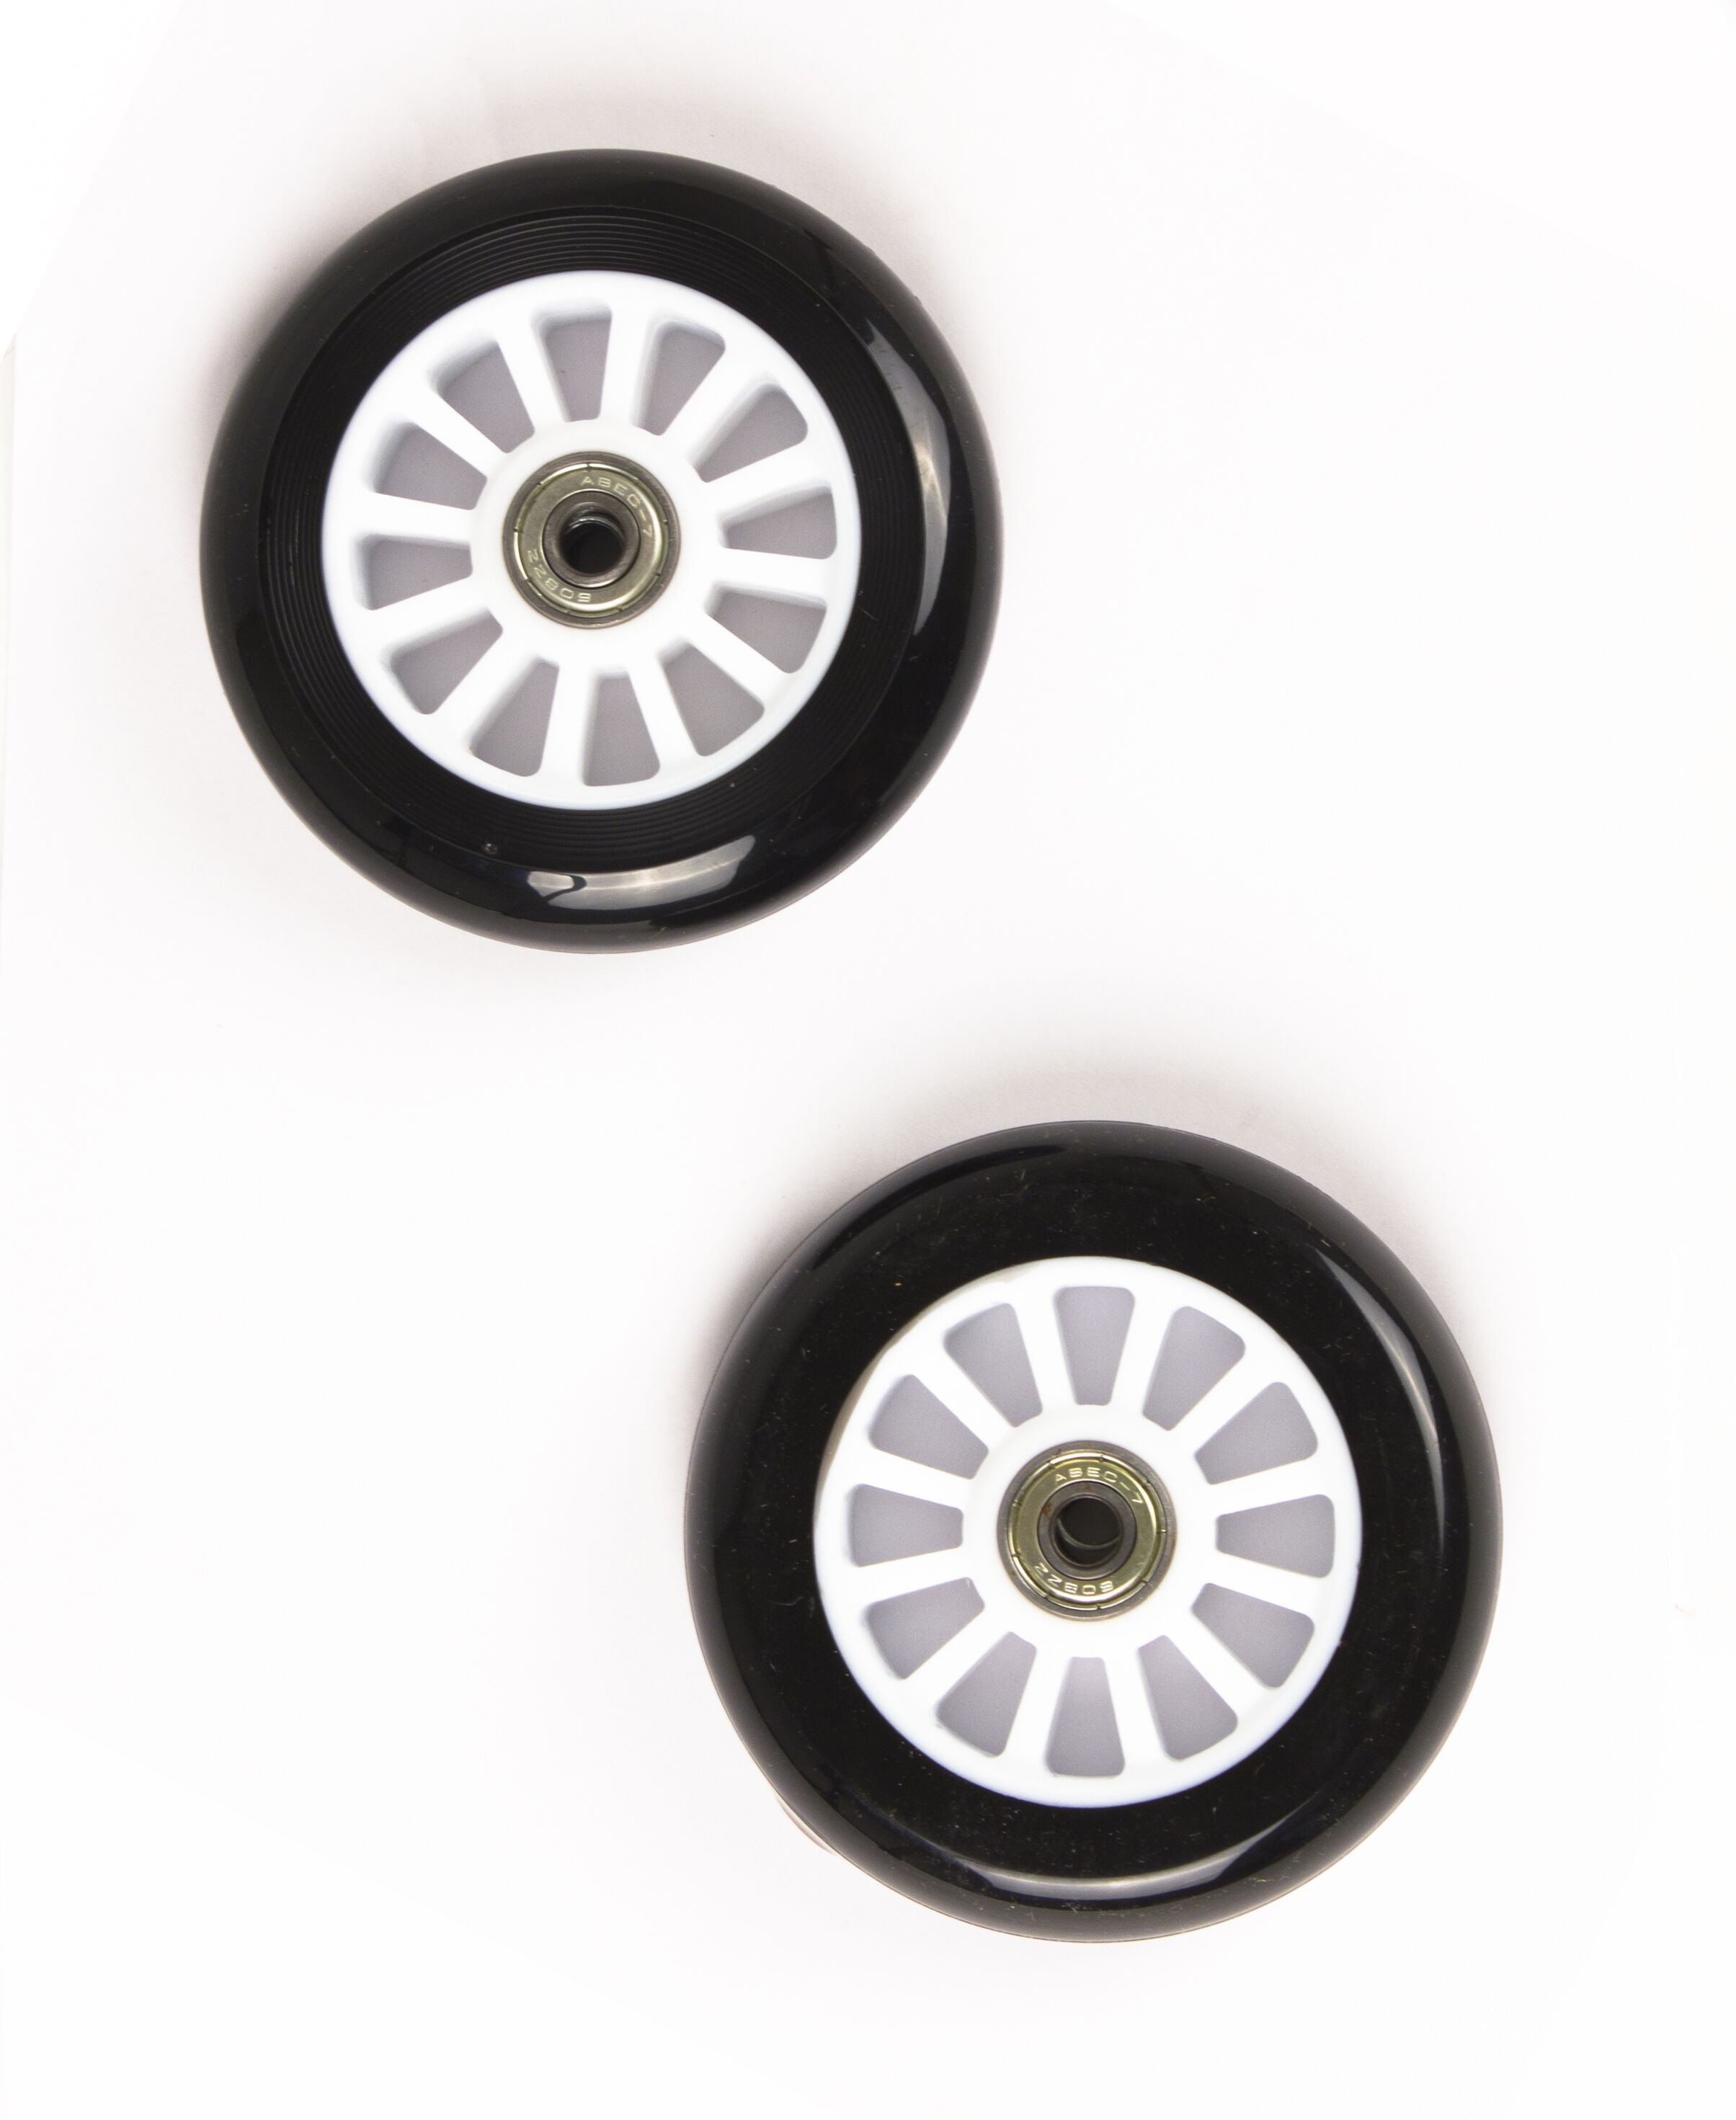 My Hood - 2 Wheels for Trick Scooters 100 mm - Black/White (505082)